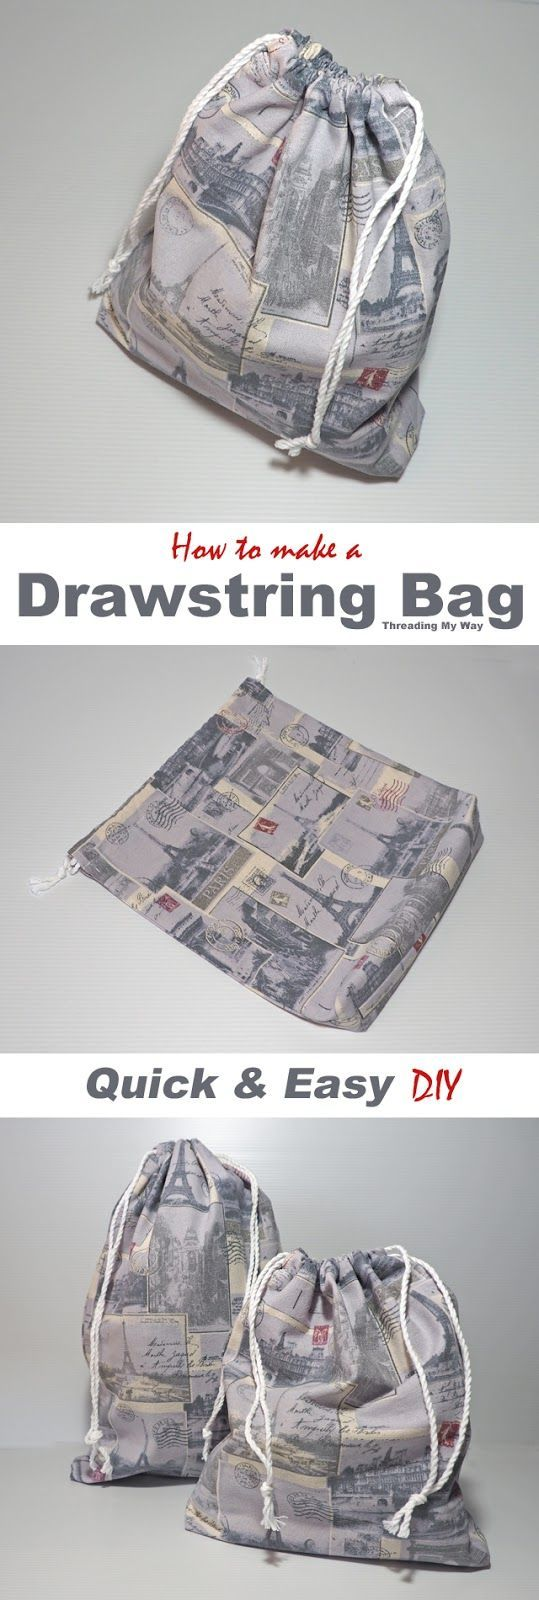 Make a simple, unlined drawstring bag. Tutorial by Threading My Way